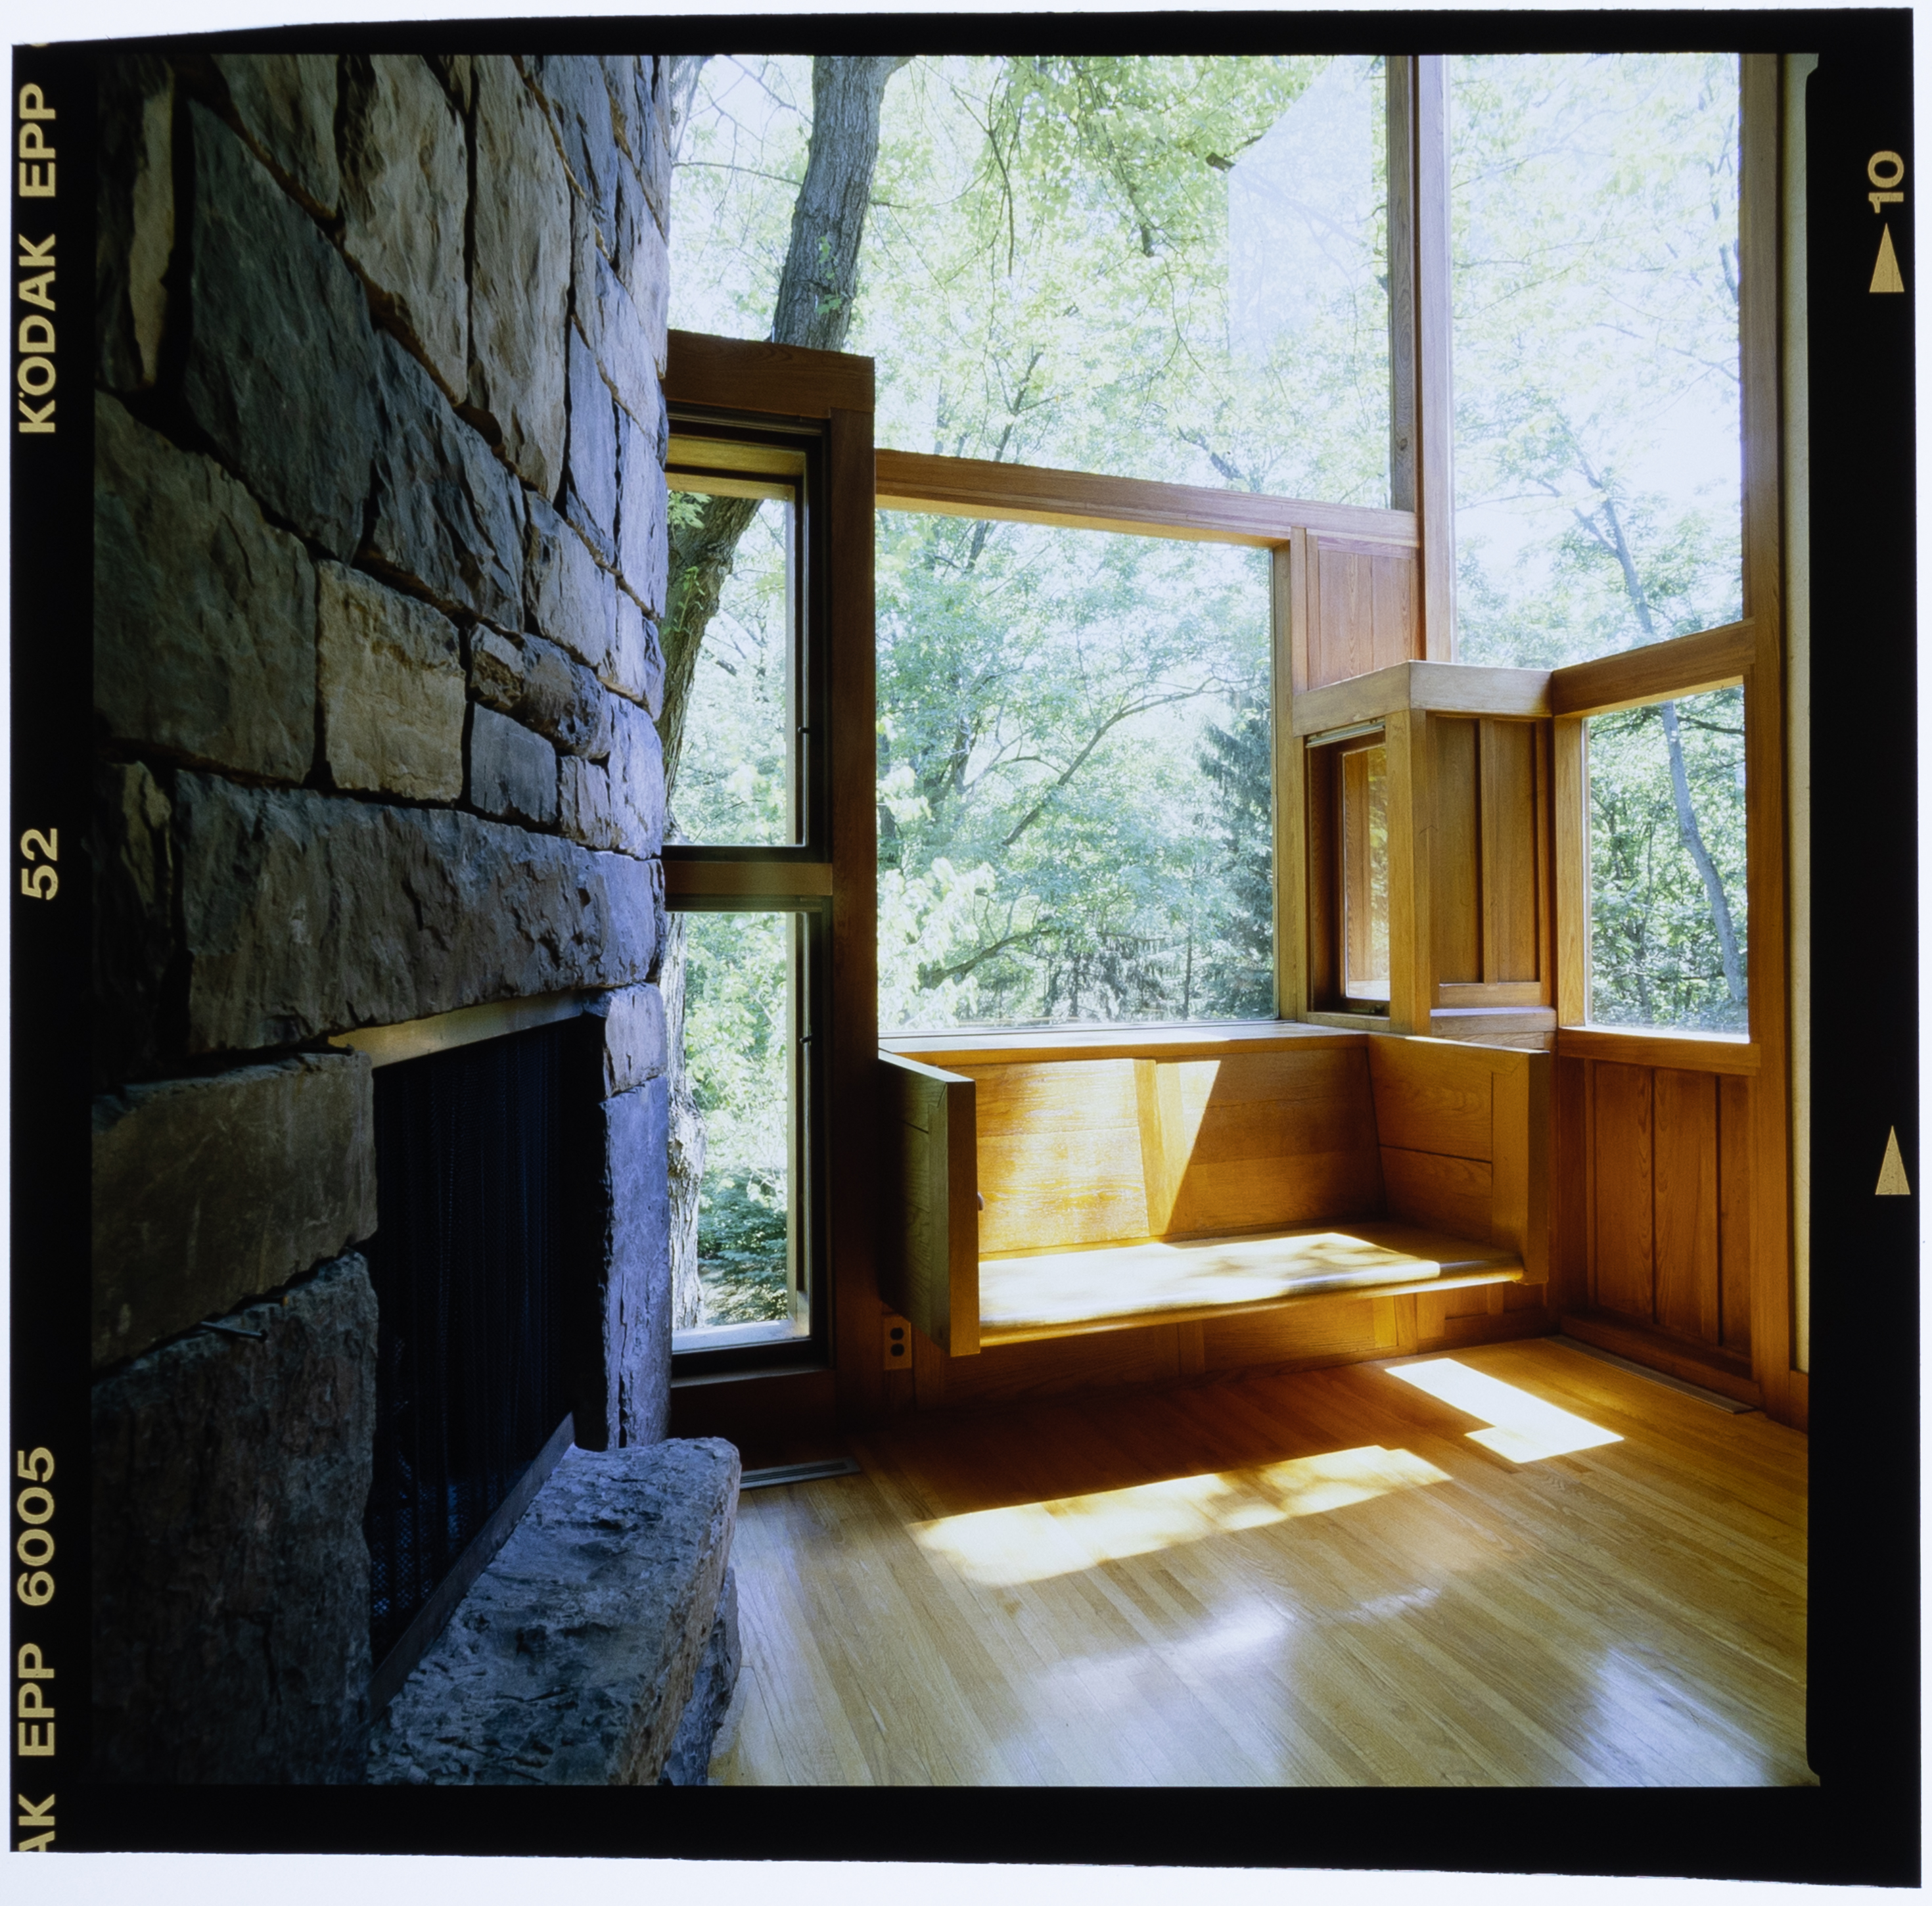 Roberto Schezen, Dr. and Mrs. Norman Fisher House, Hatboro, Pennsylvania  1960-67, 2001 ca., Courtesy Fondazione MAXXI